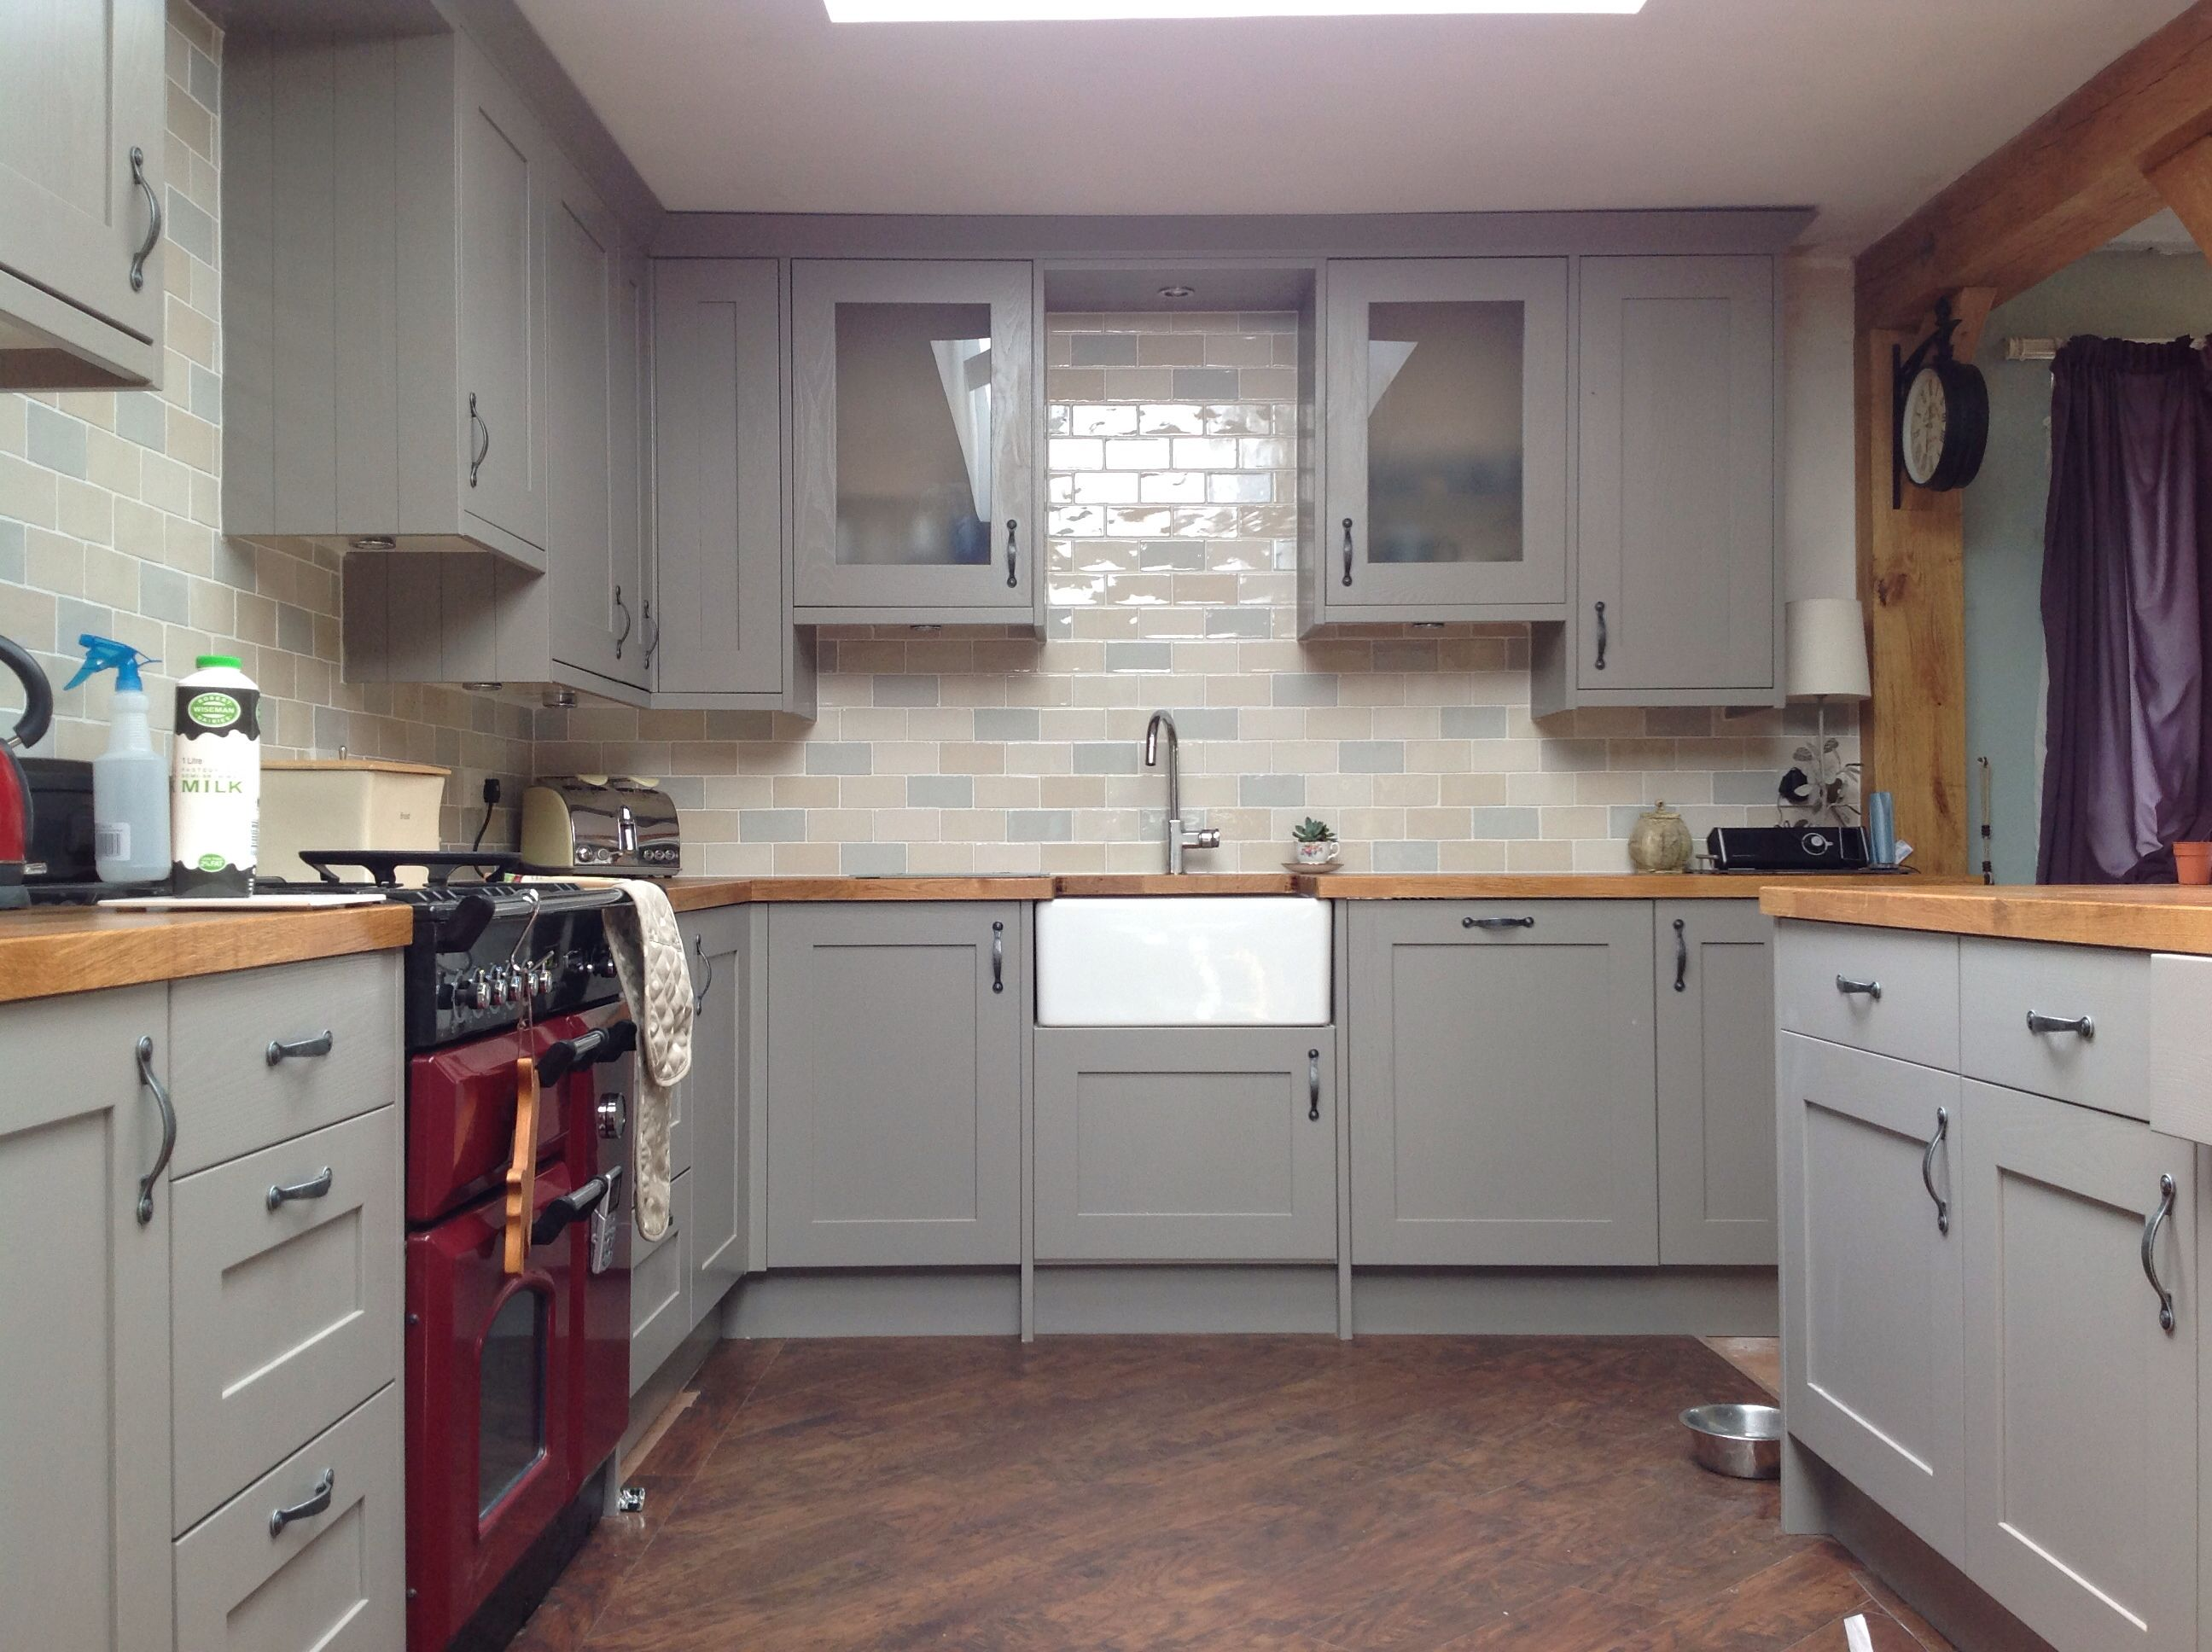 This is my kitchen. All done and dusted with carlisbrooke